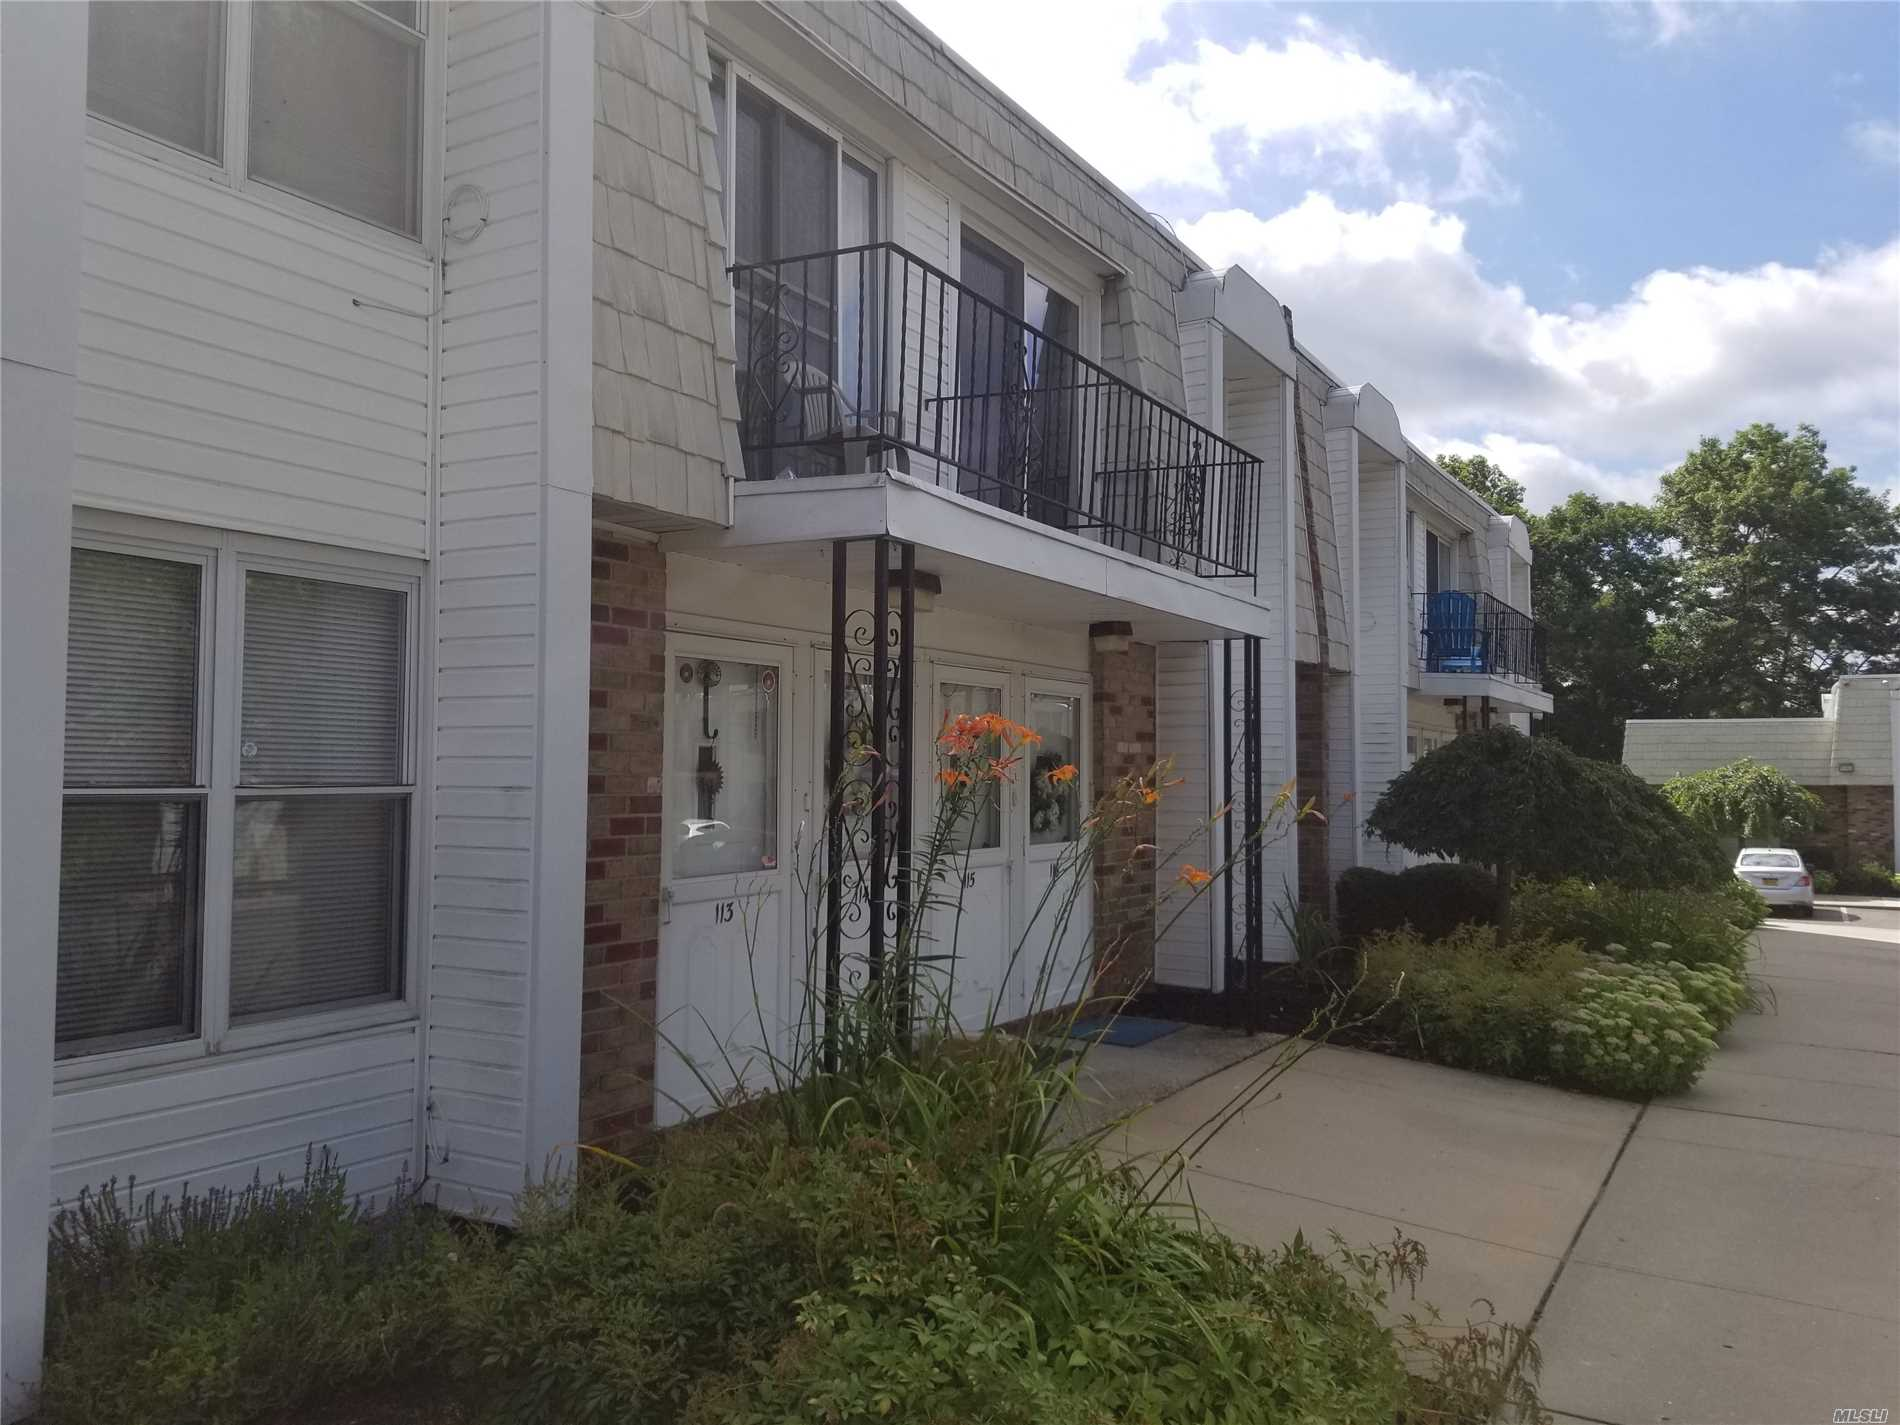 2 Bedroom Upper Unit With New Sliding Glass Doors Leading To The Balcony. Wall To Wall Carpet. Living Room Dining Room Combo. New Heat & Cac Unit,